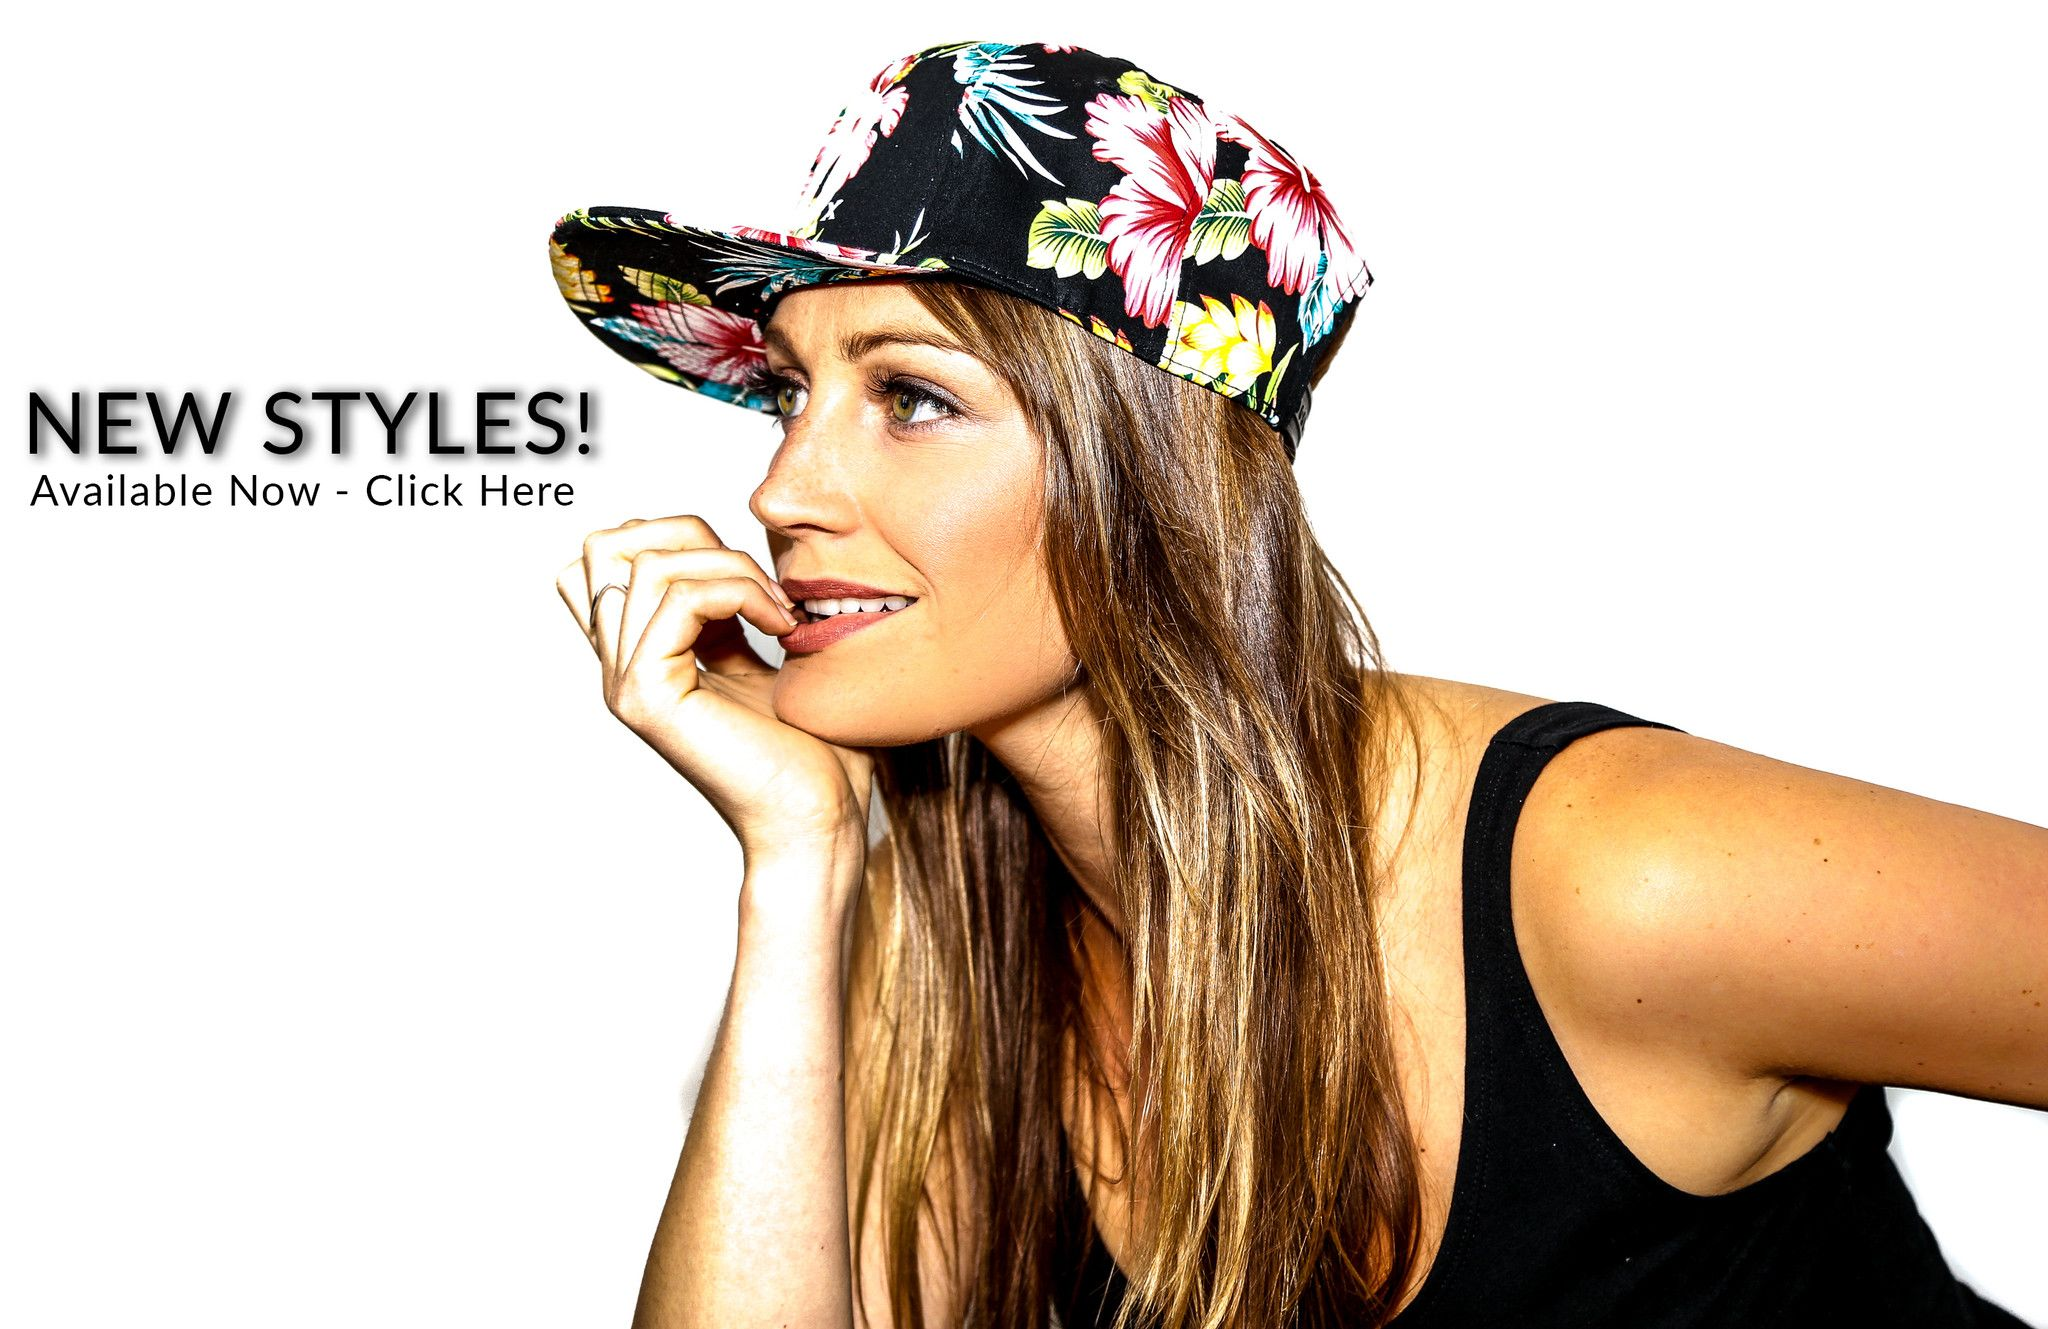 Bad Kids Collective | Snapbacks and the Millennial Lifestyle